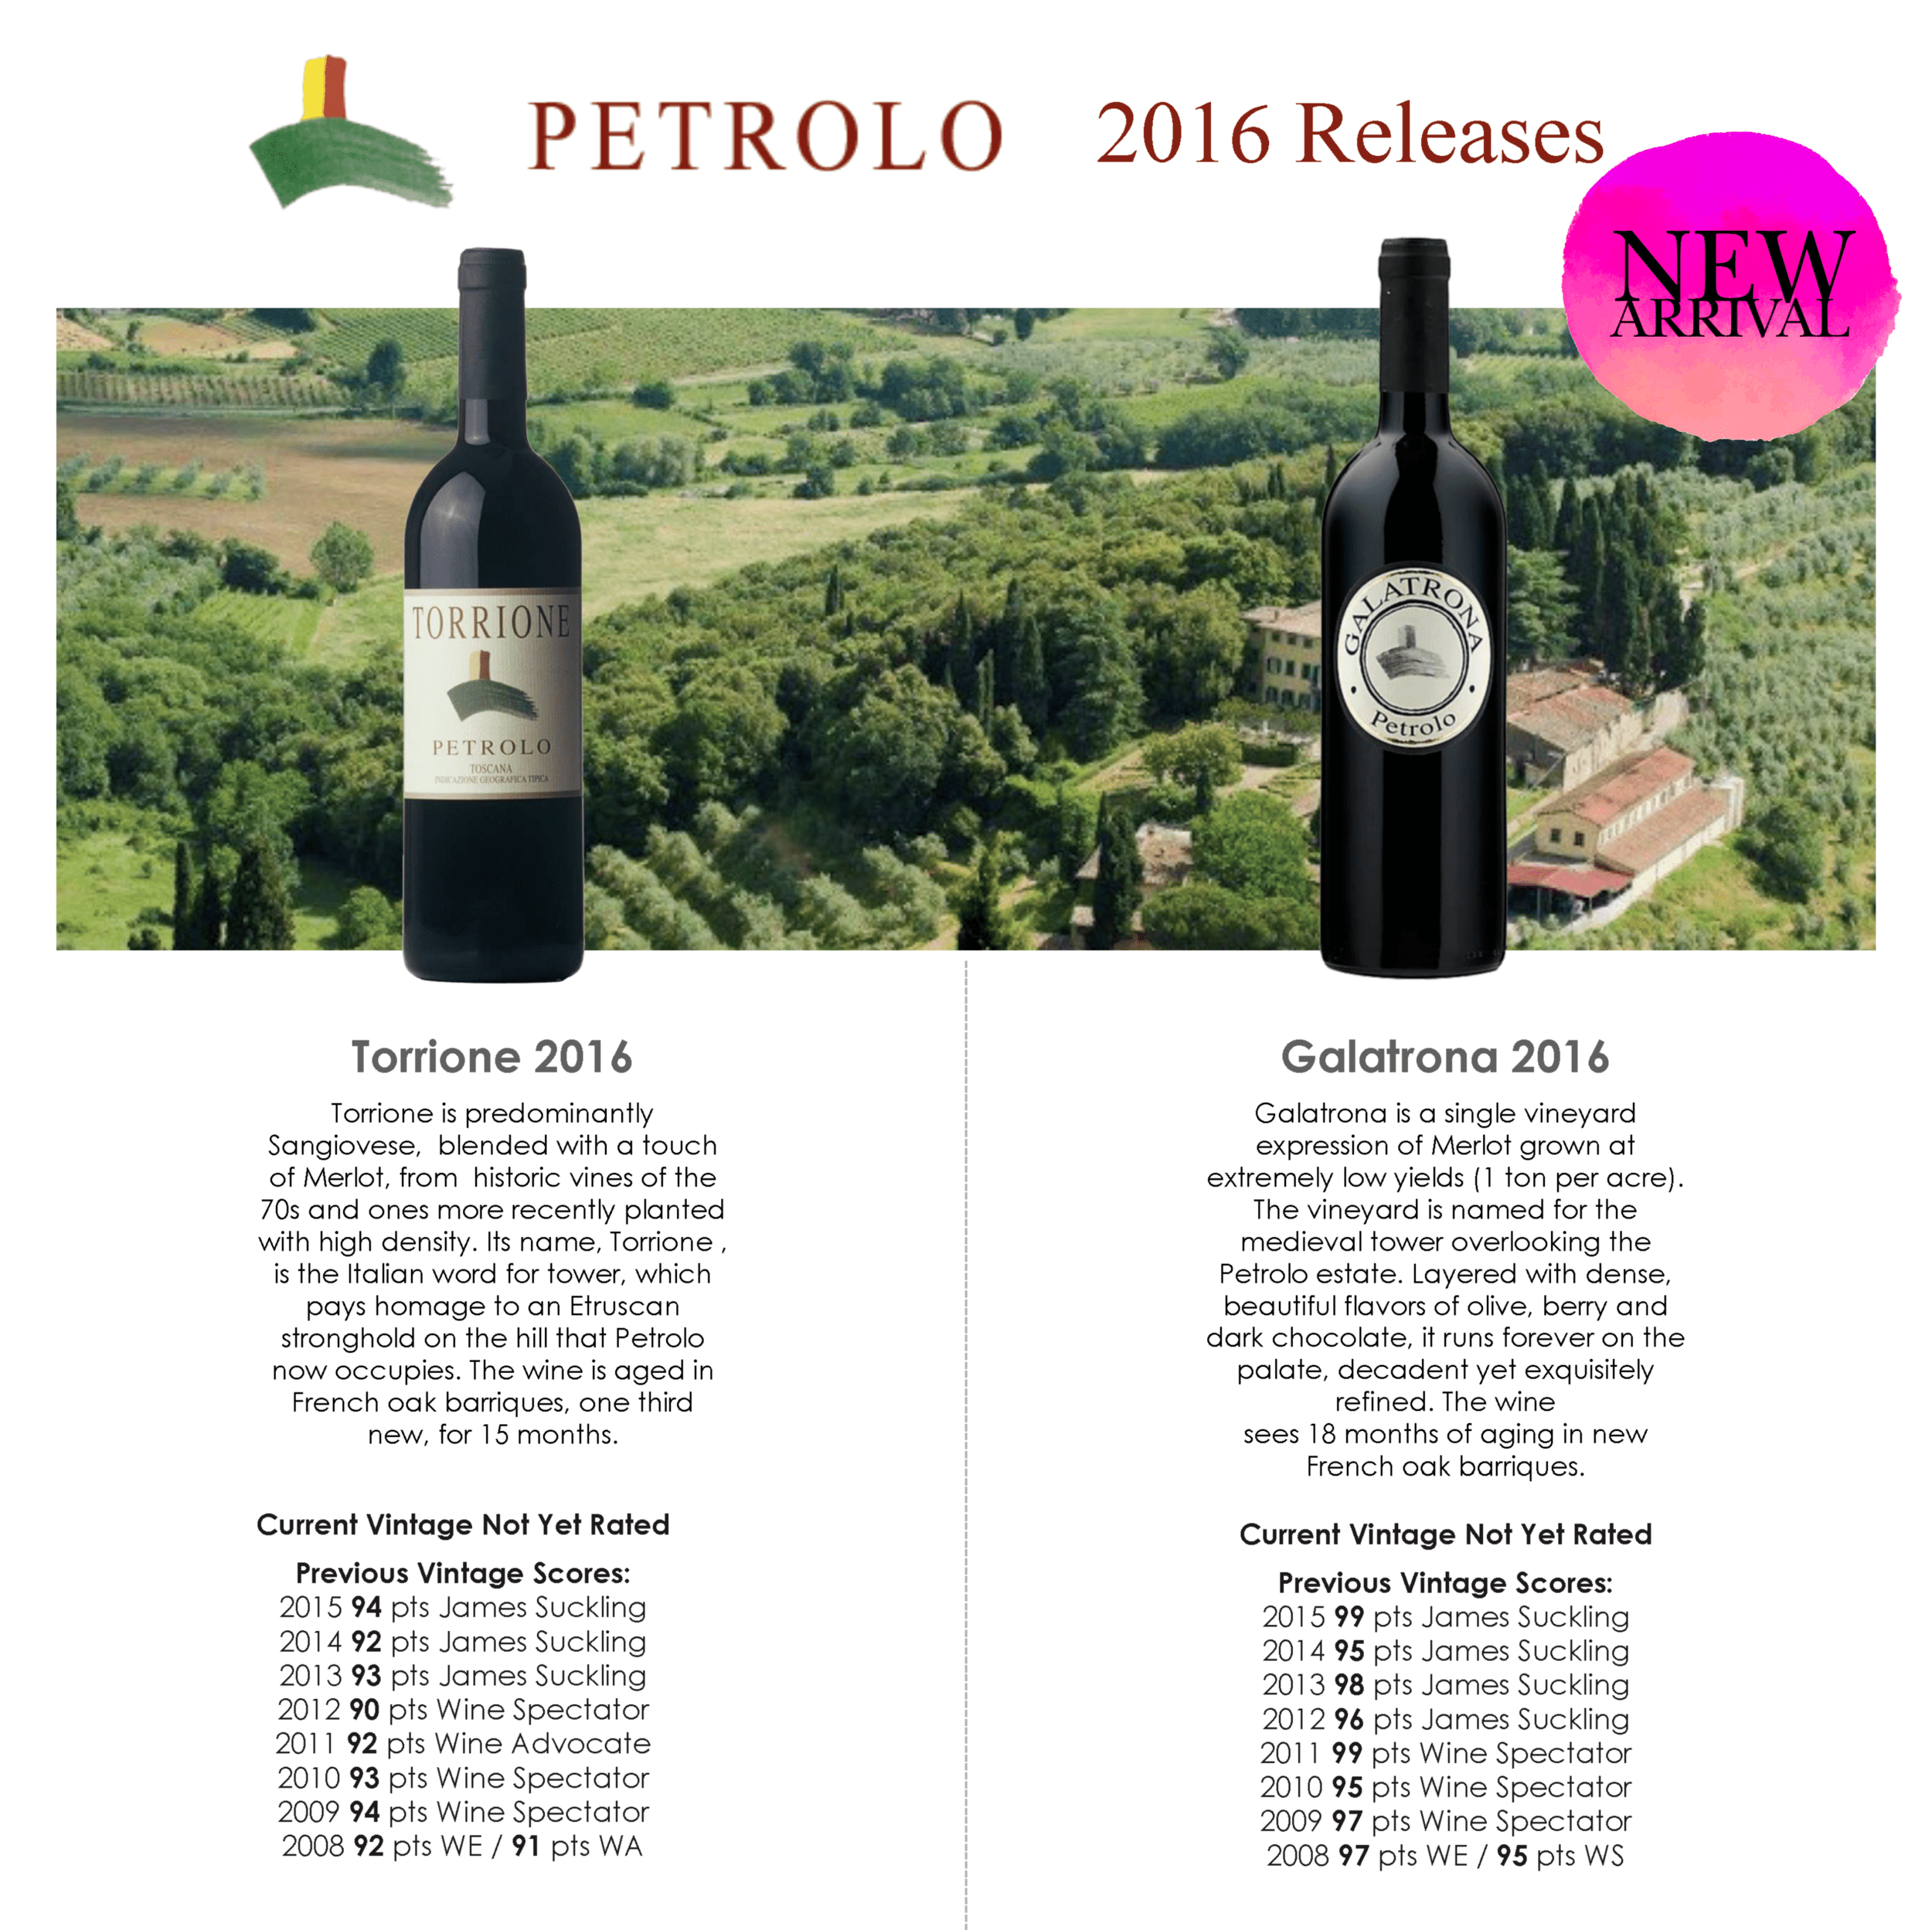 medium resolution of 04 petrolo 2016 releases pb 12 18 png